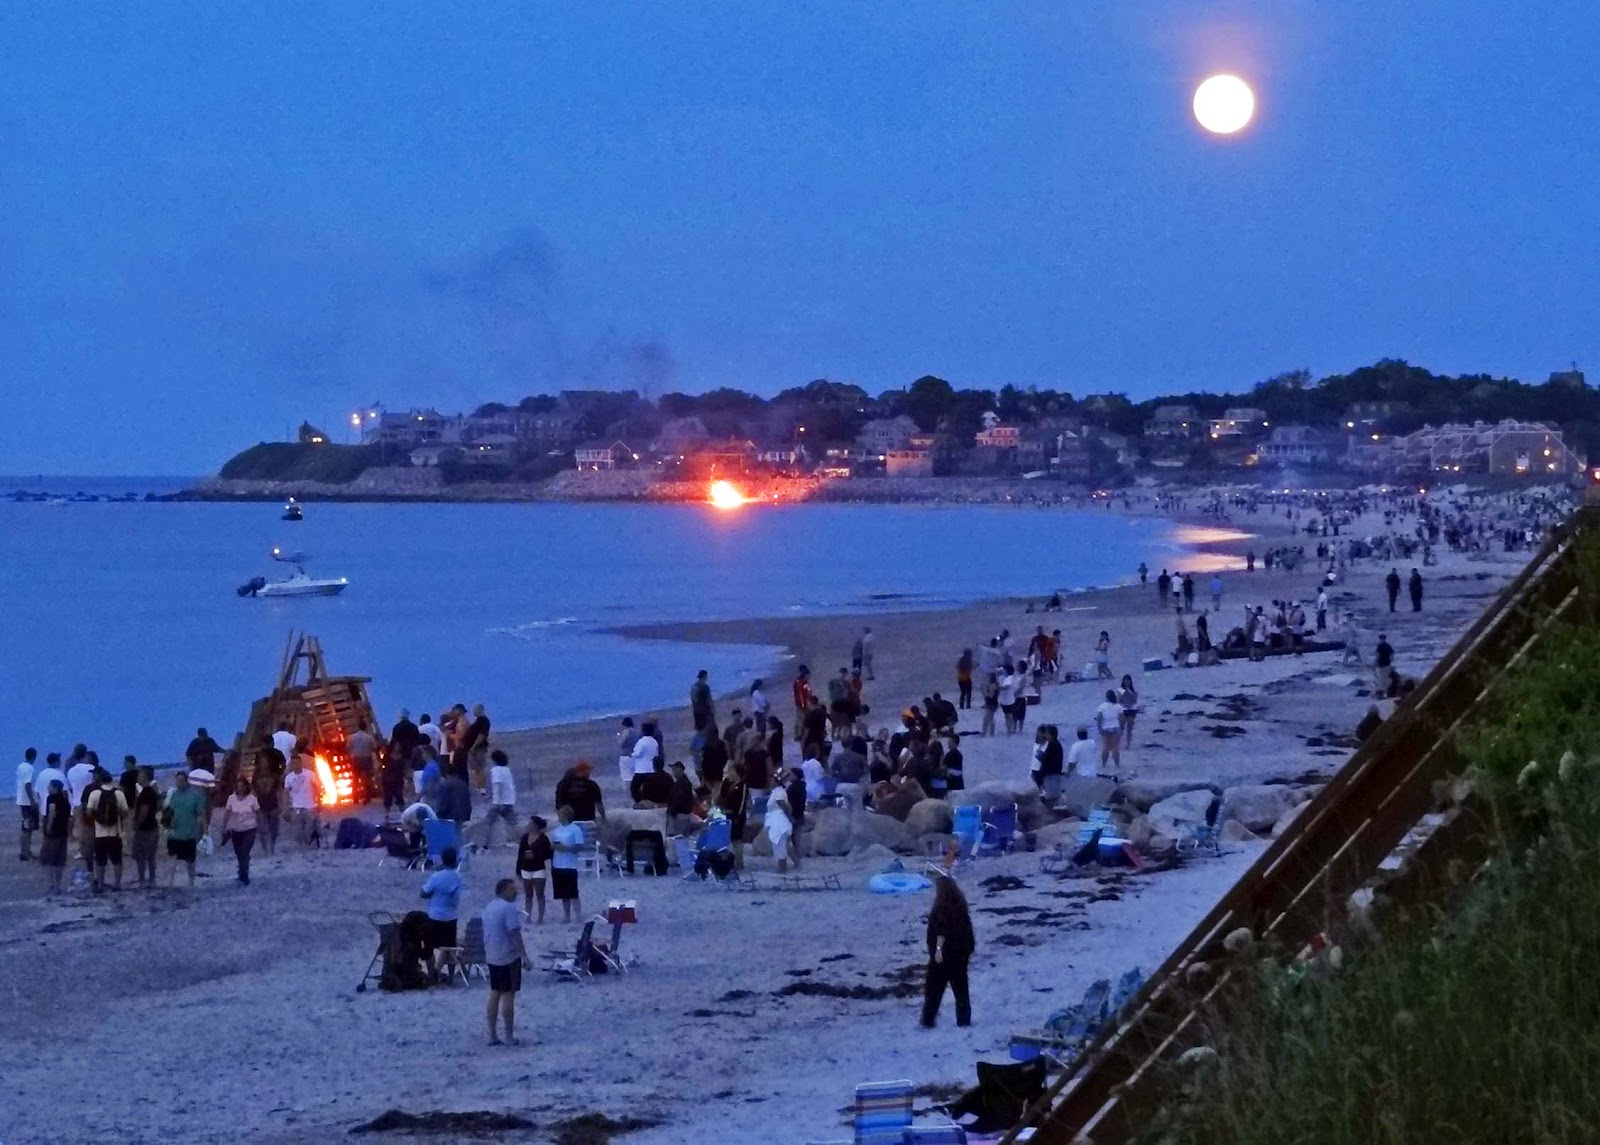 Bonfires And Fireworks White Horse Beach Manomet Plymouth Machusetts Usa